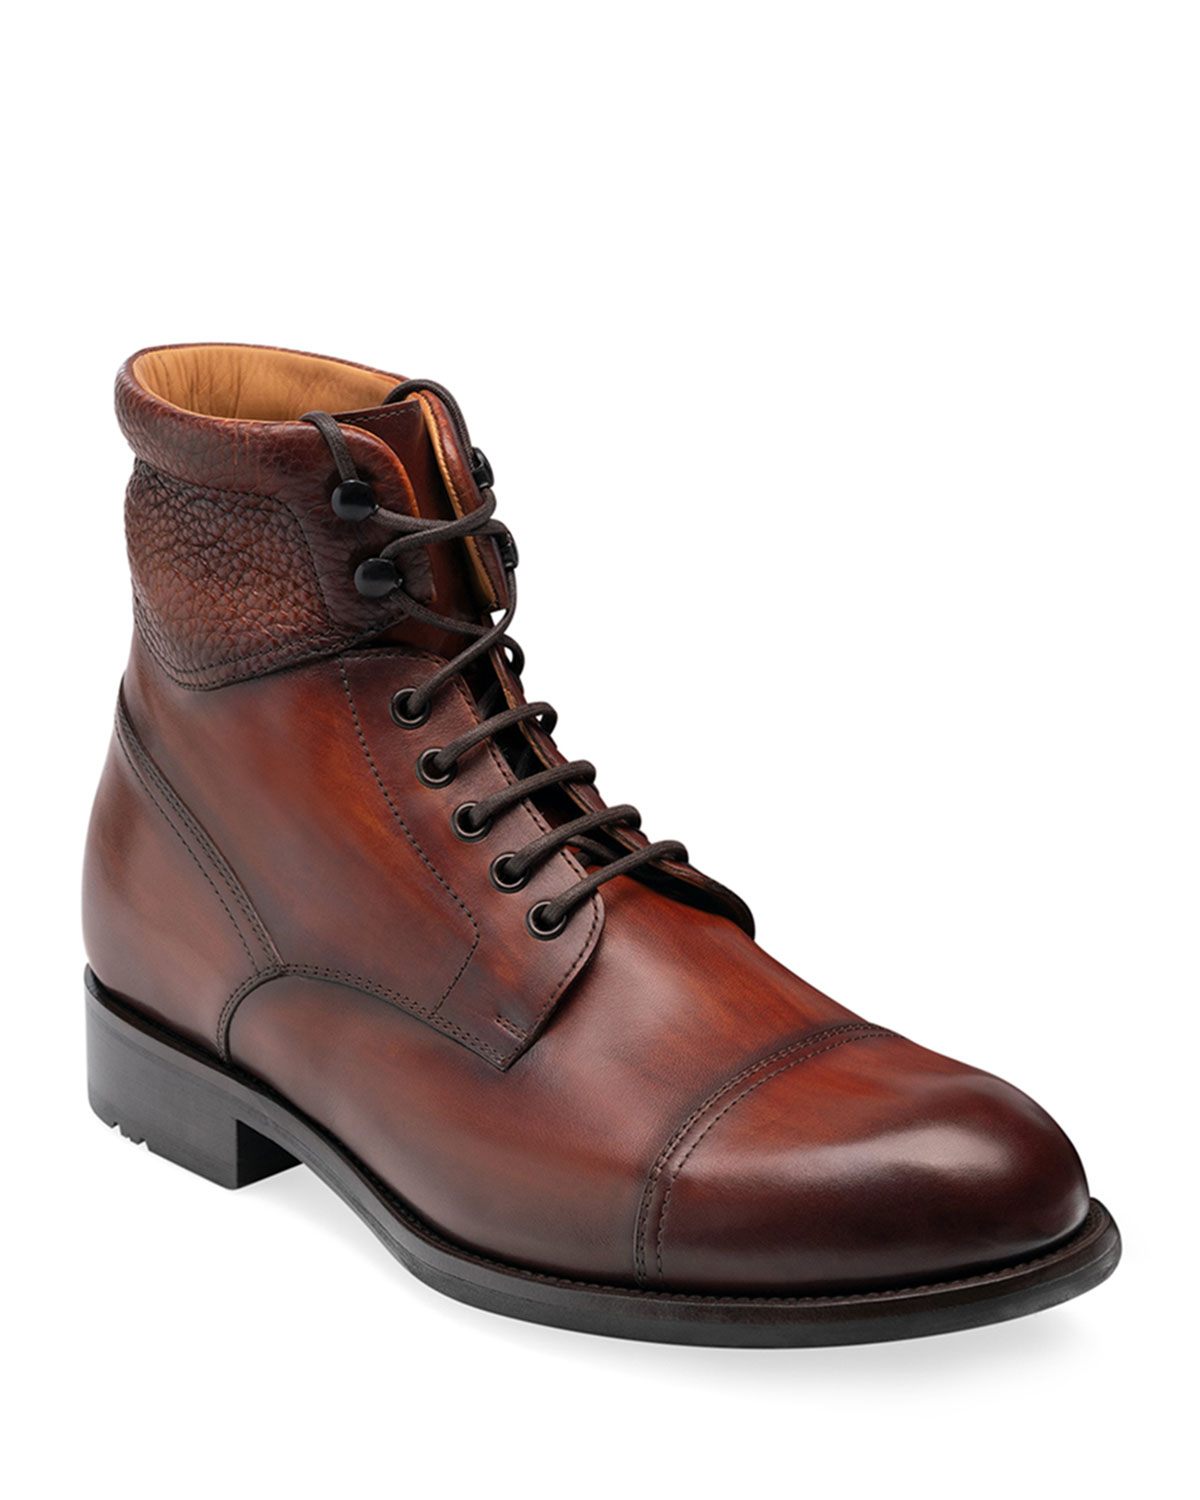 mens-peyton-ii-burnished-leather-lace-up-boots by magnanni